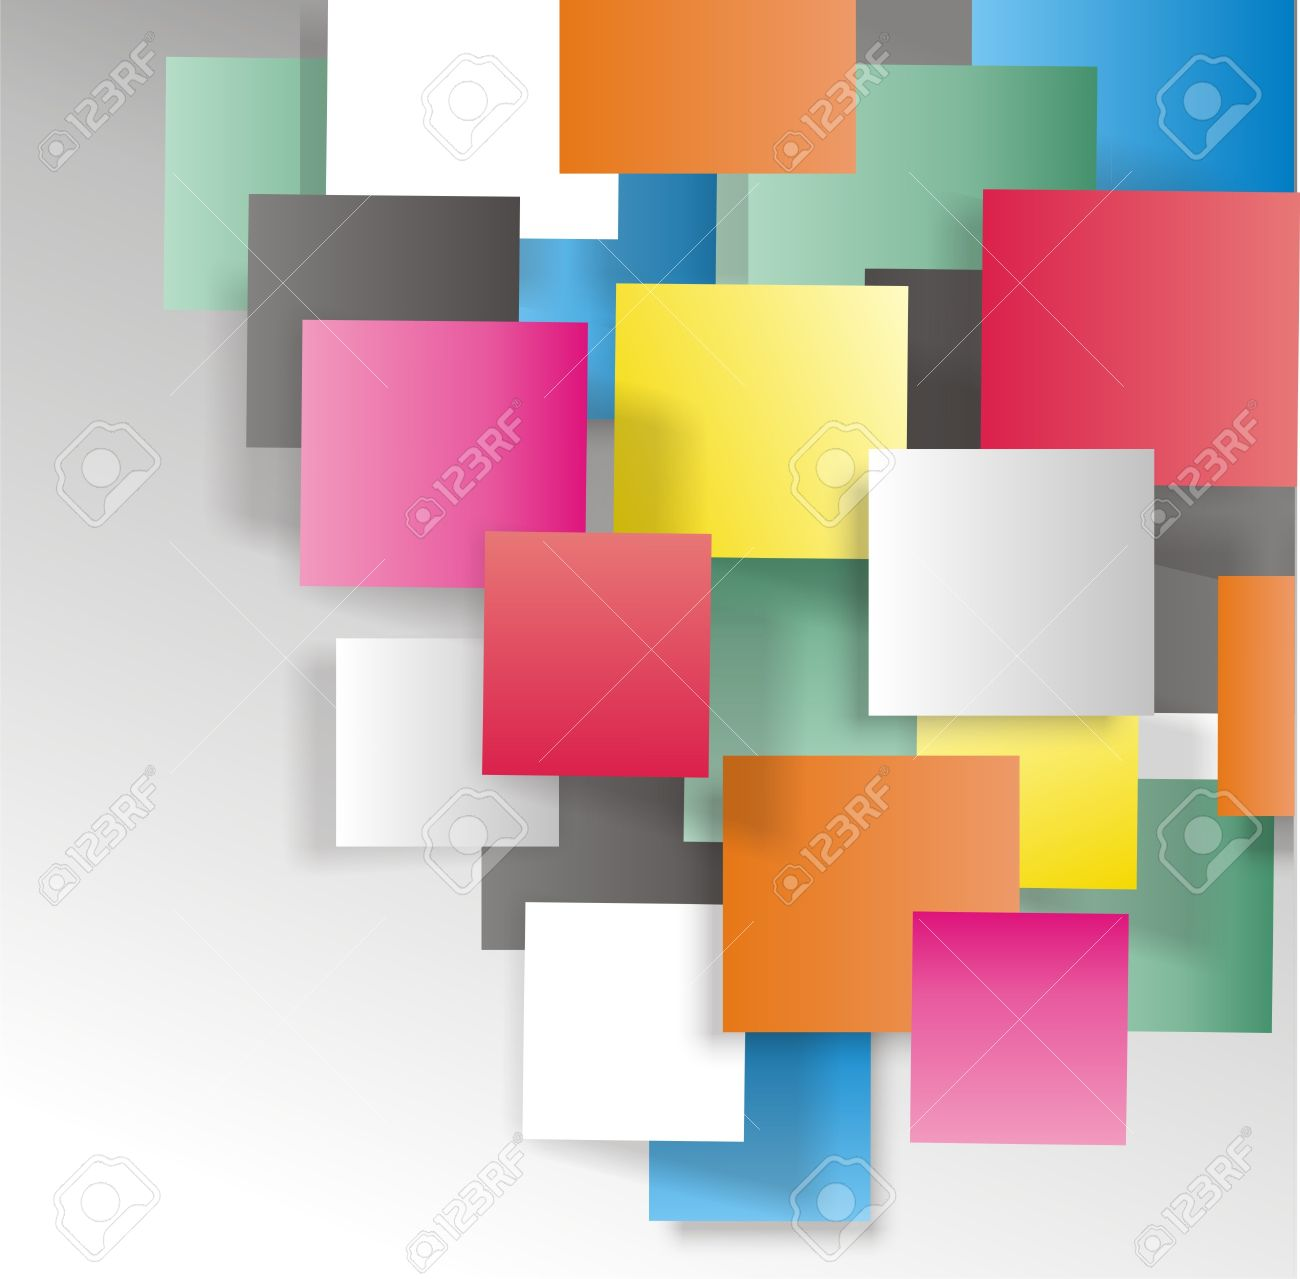 Beautiful background with frames in many colors 3d Stock Photo - 15647446